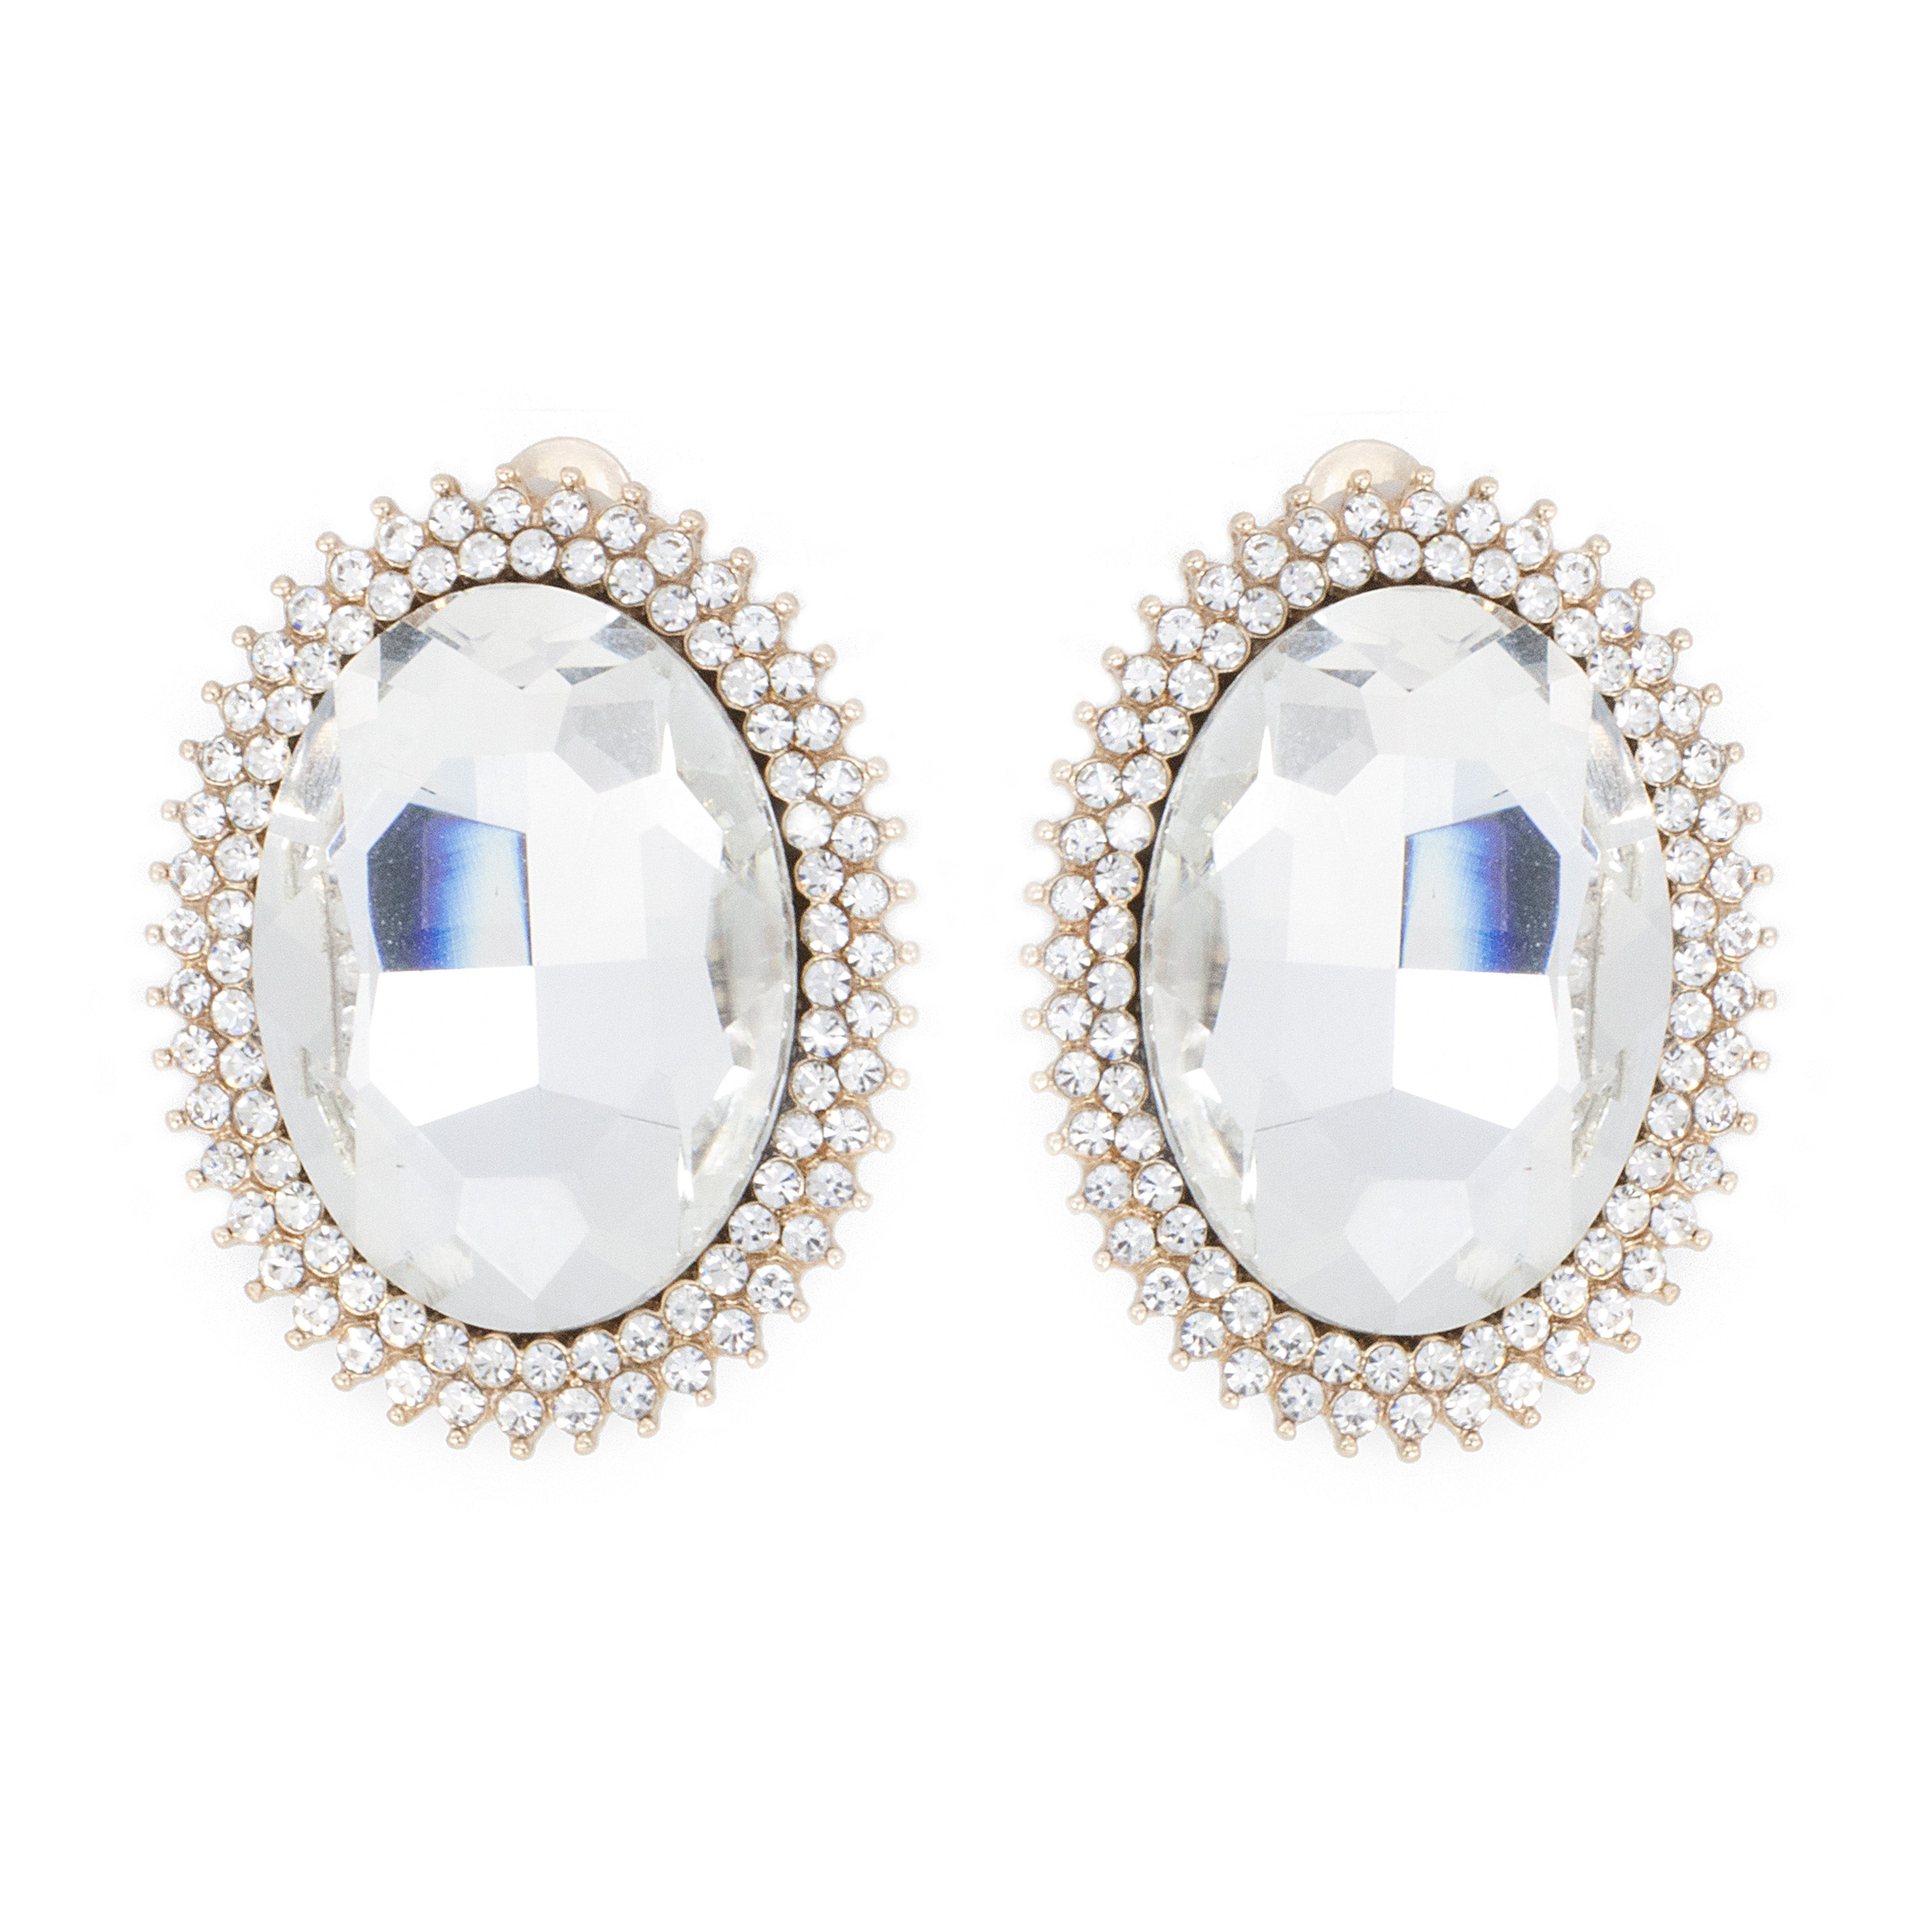 Framed Oval Glass Stone Clip On Earrings